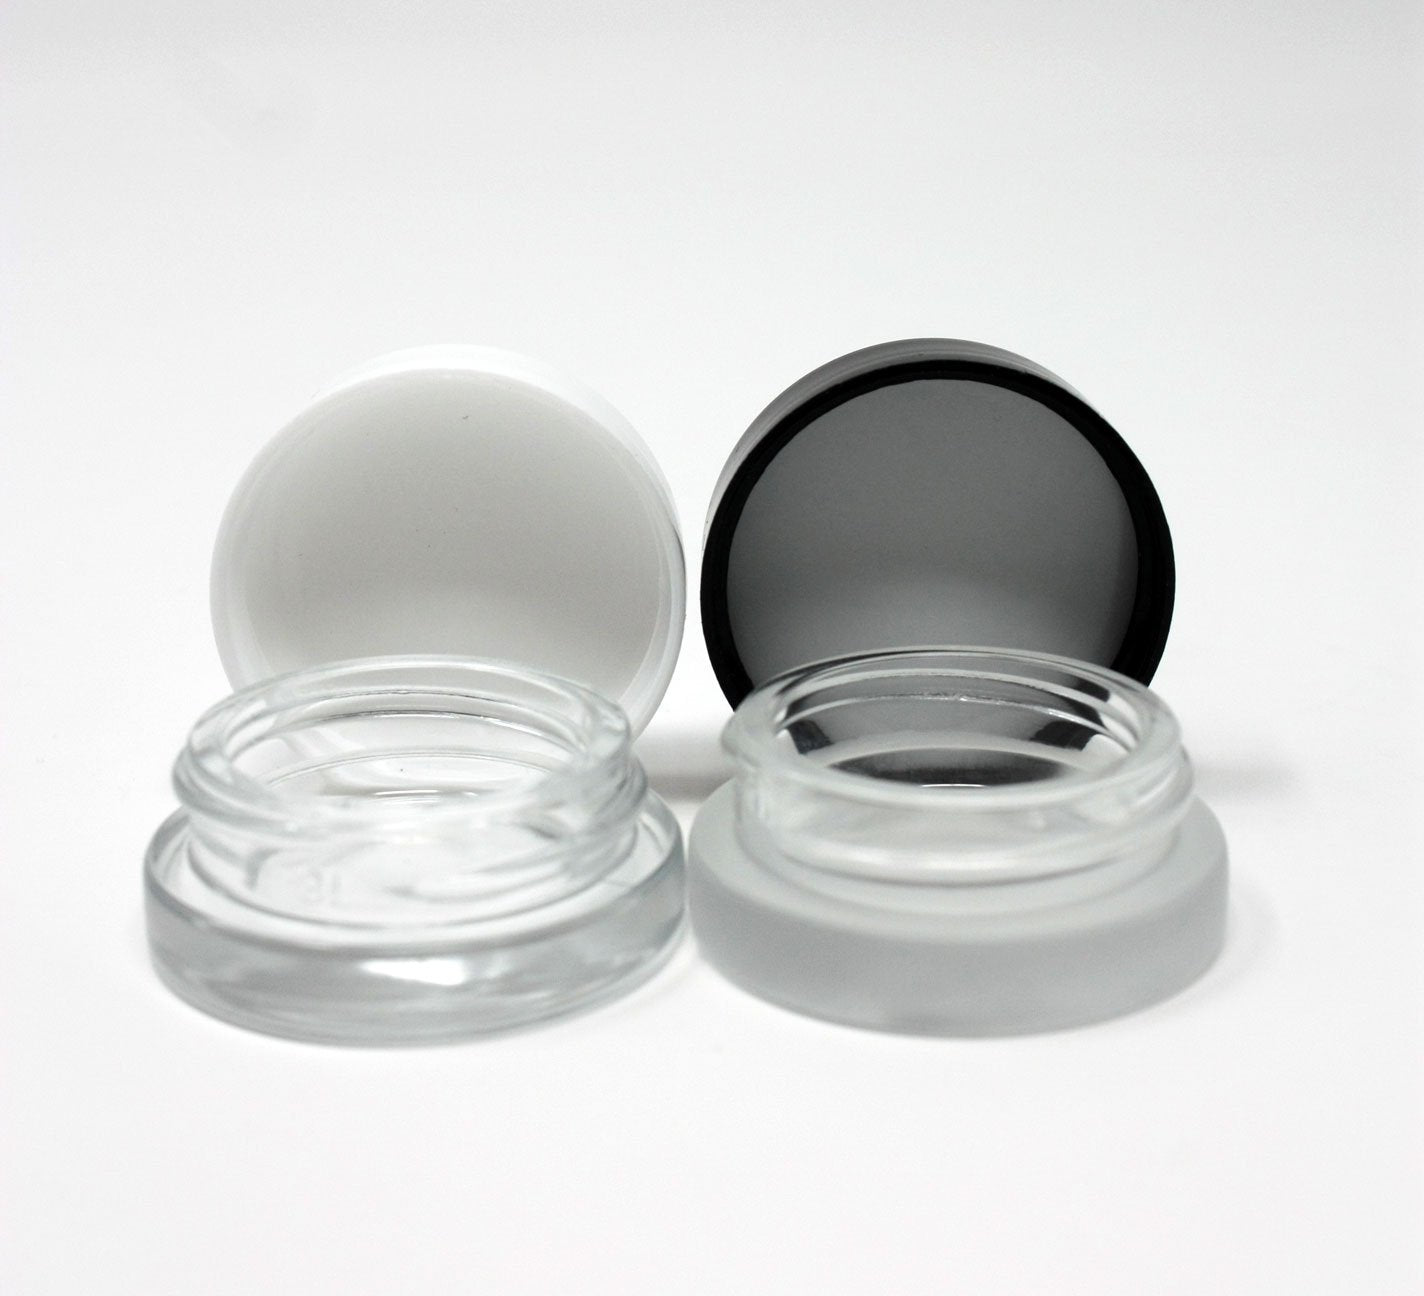 7ml Screw Top Jars with Lids